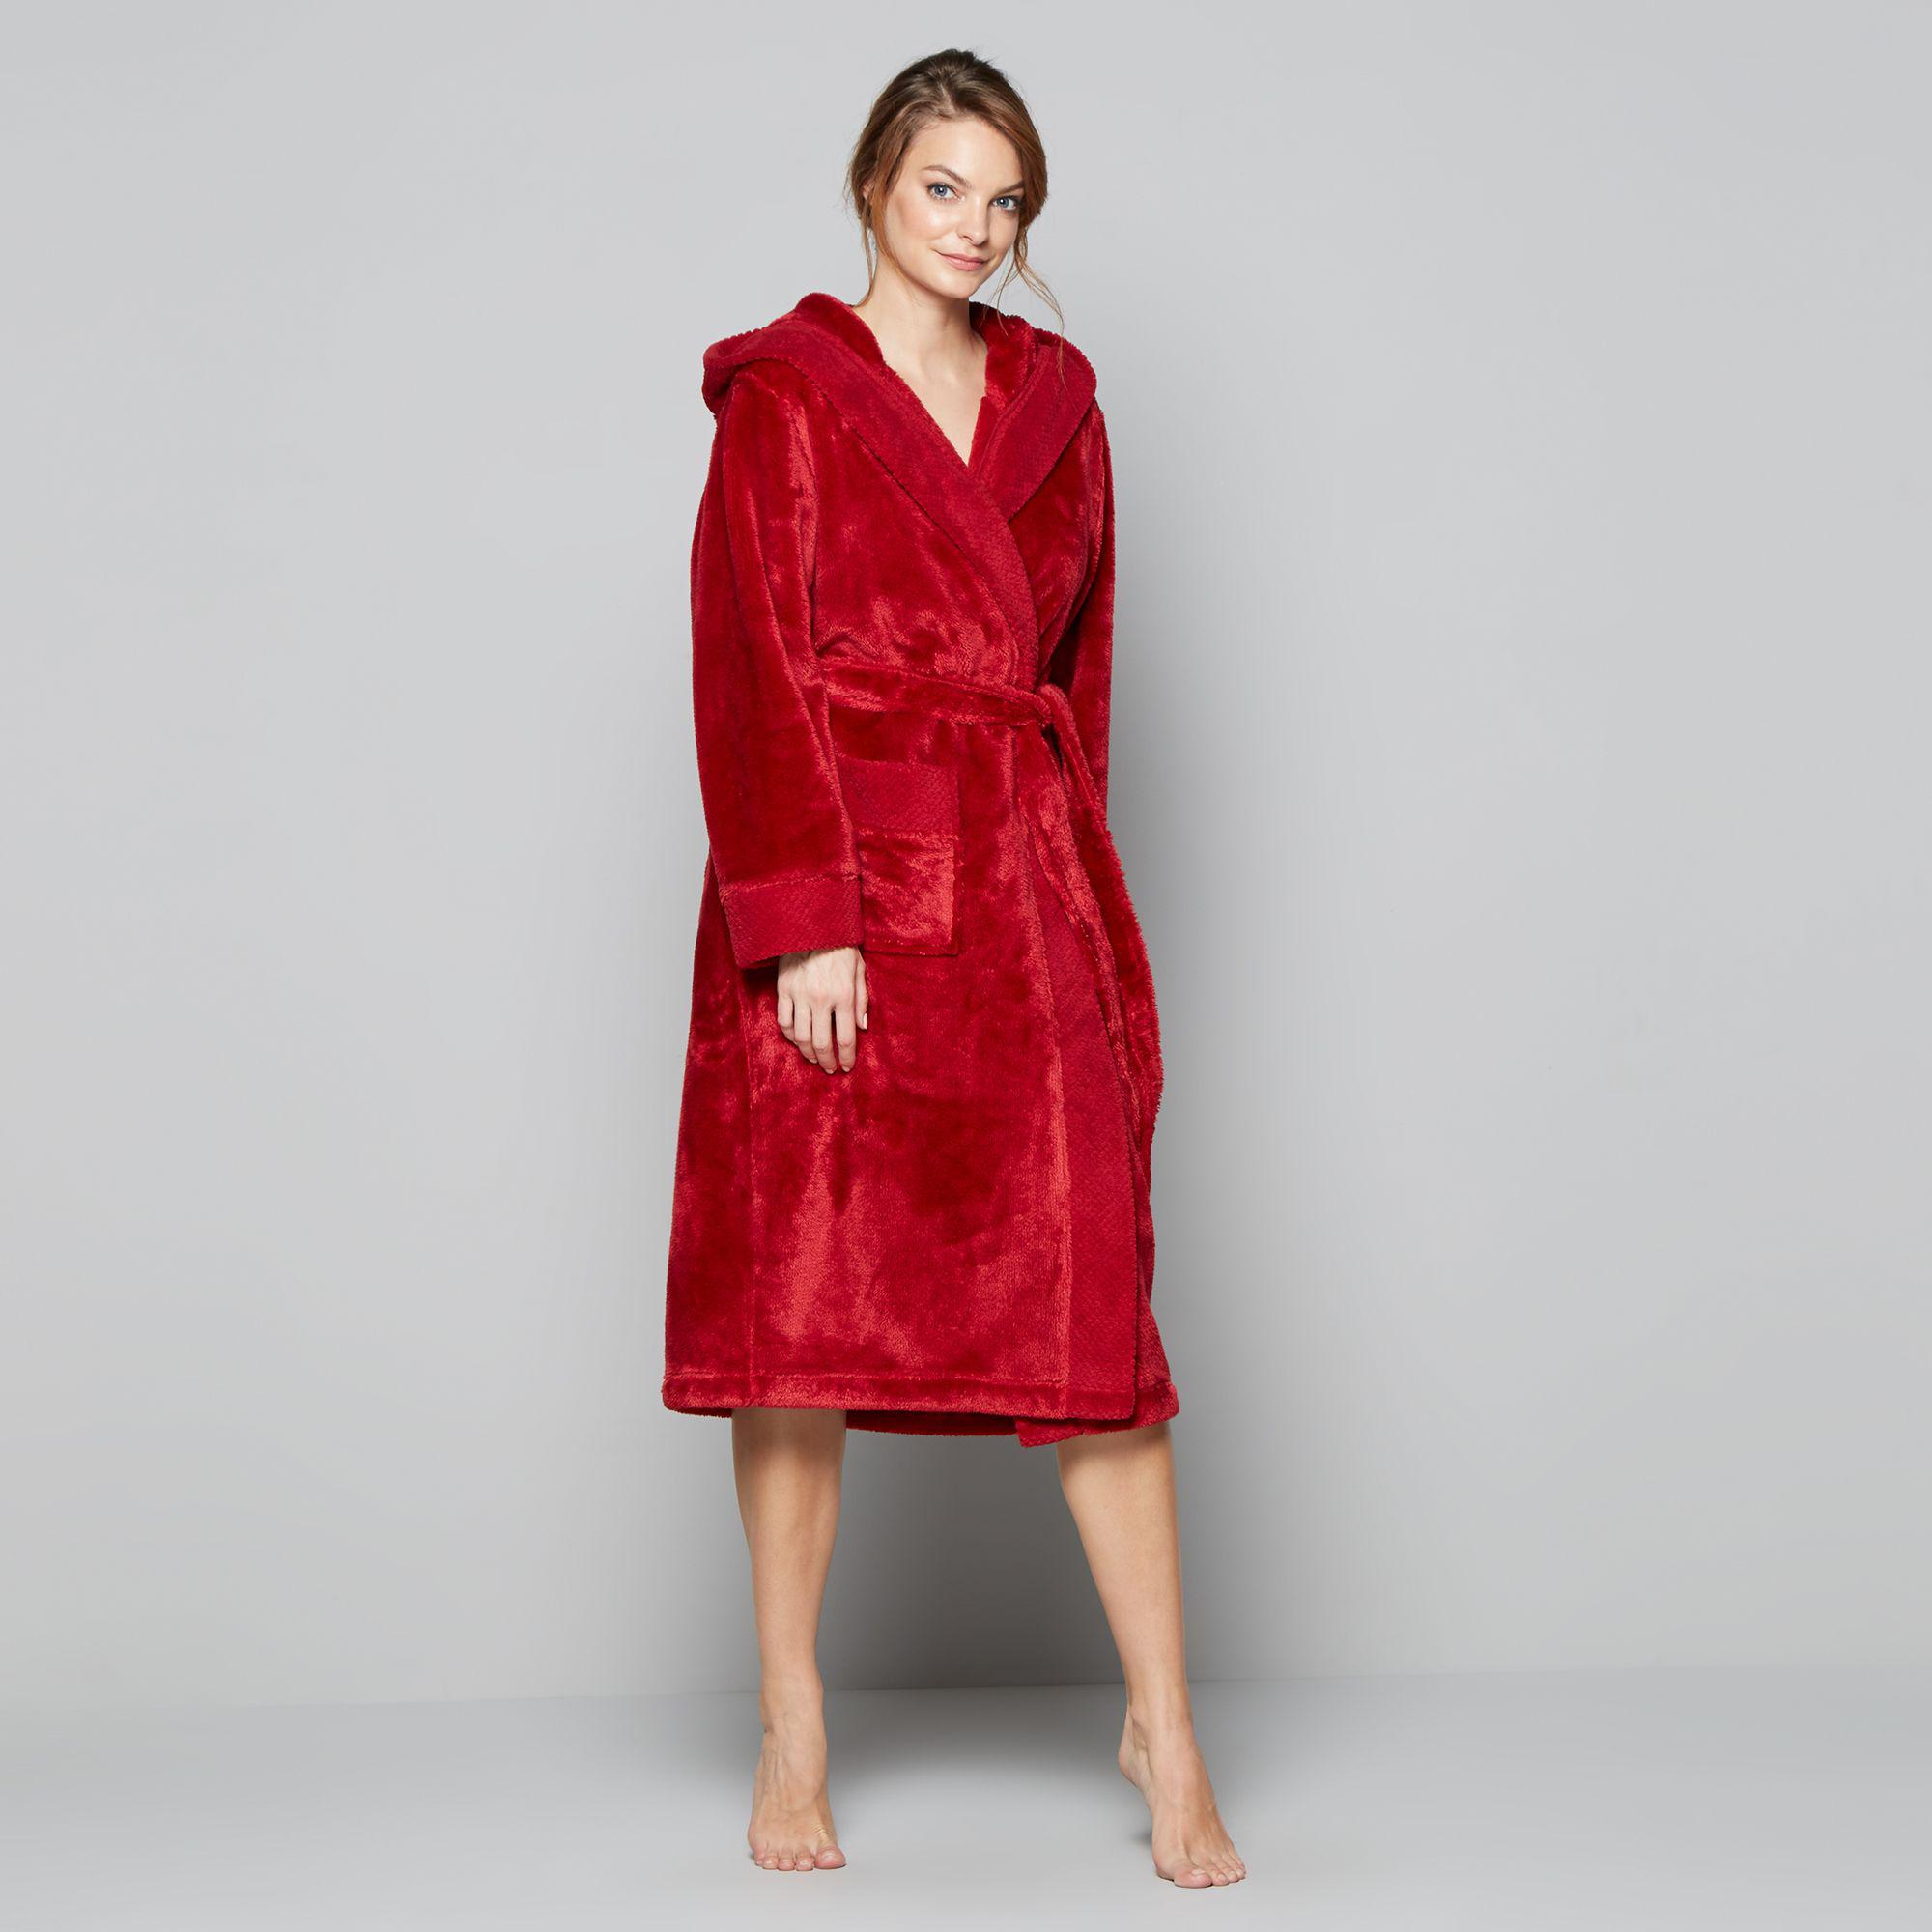 J By Jasper Conran Red Fleece Dressing Gown in Red - Lyst 617e6dc1c